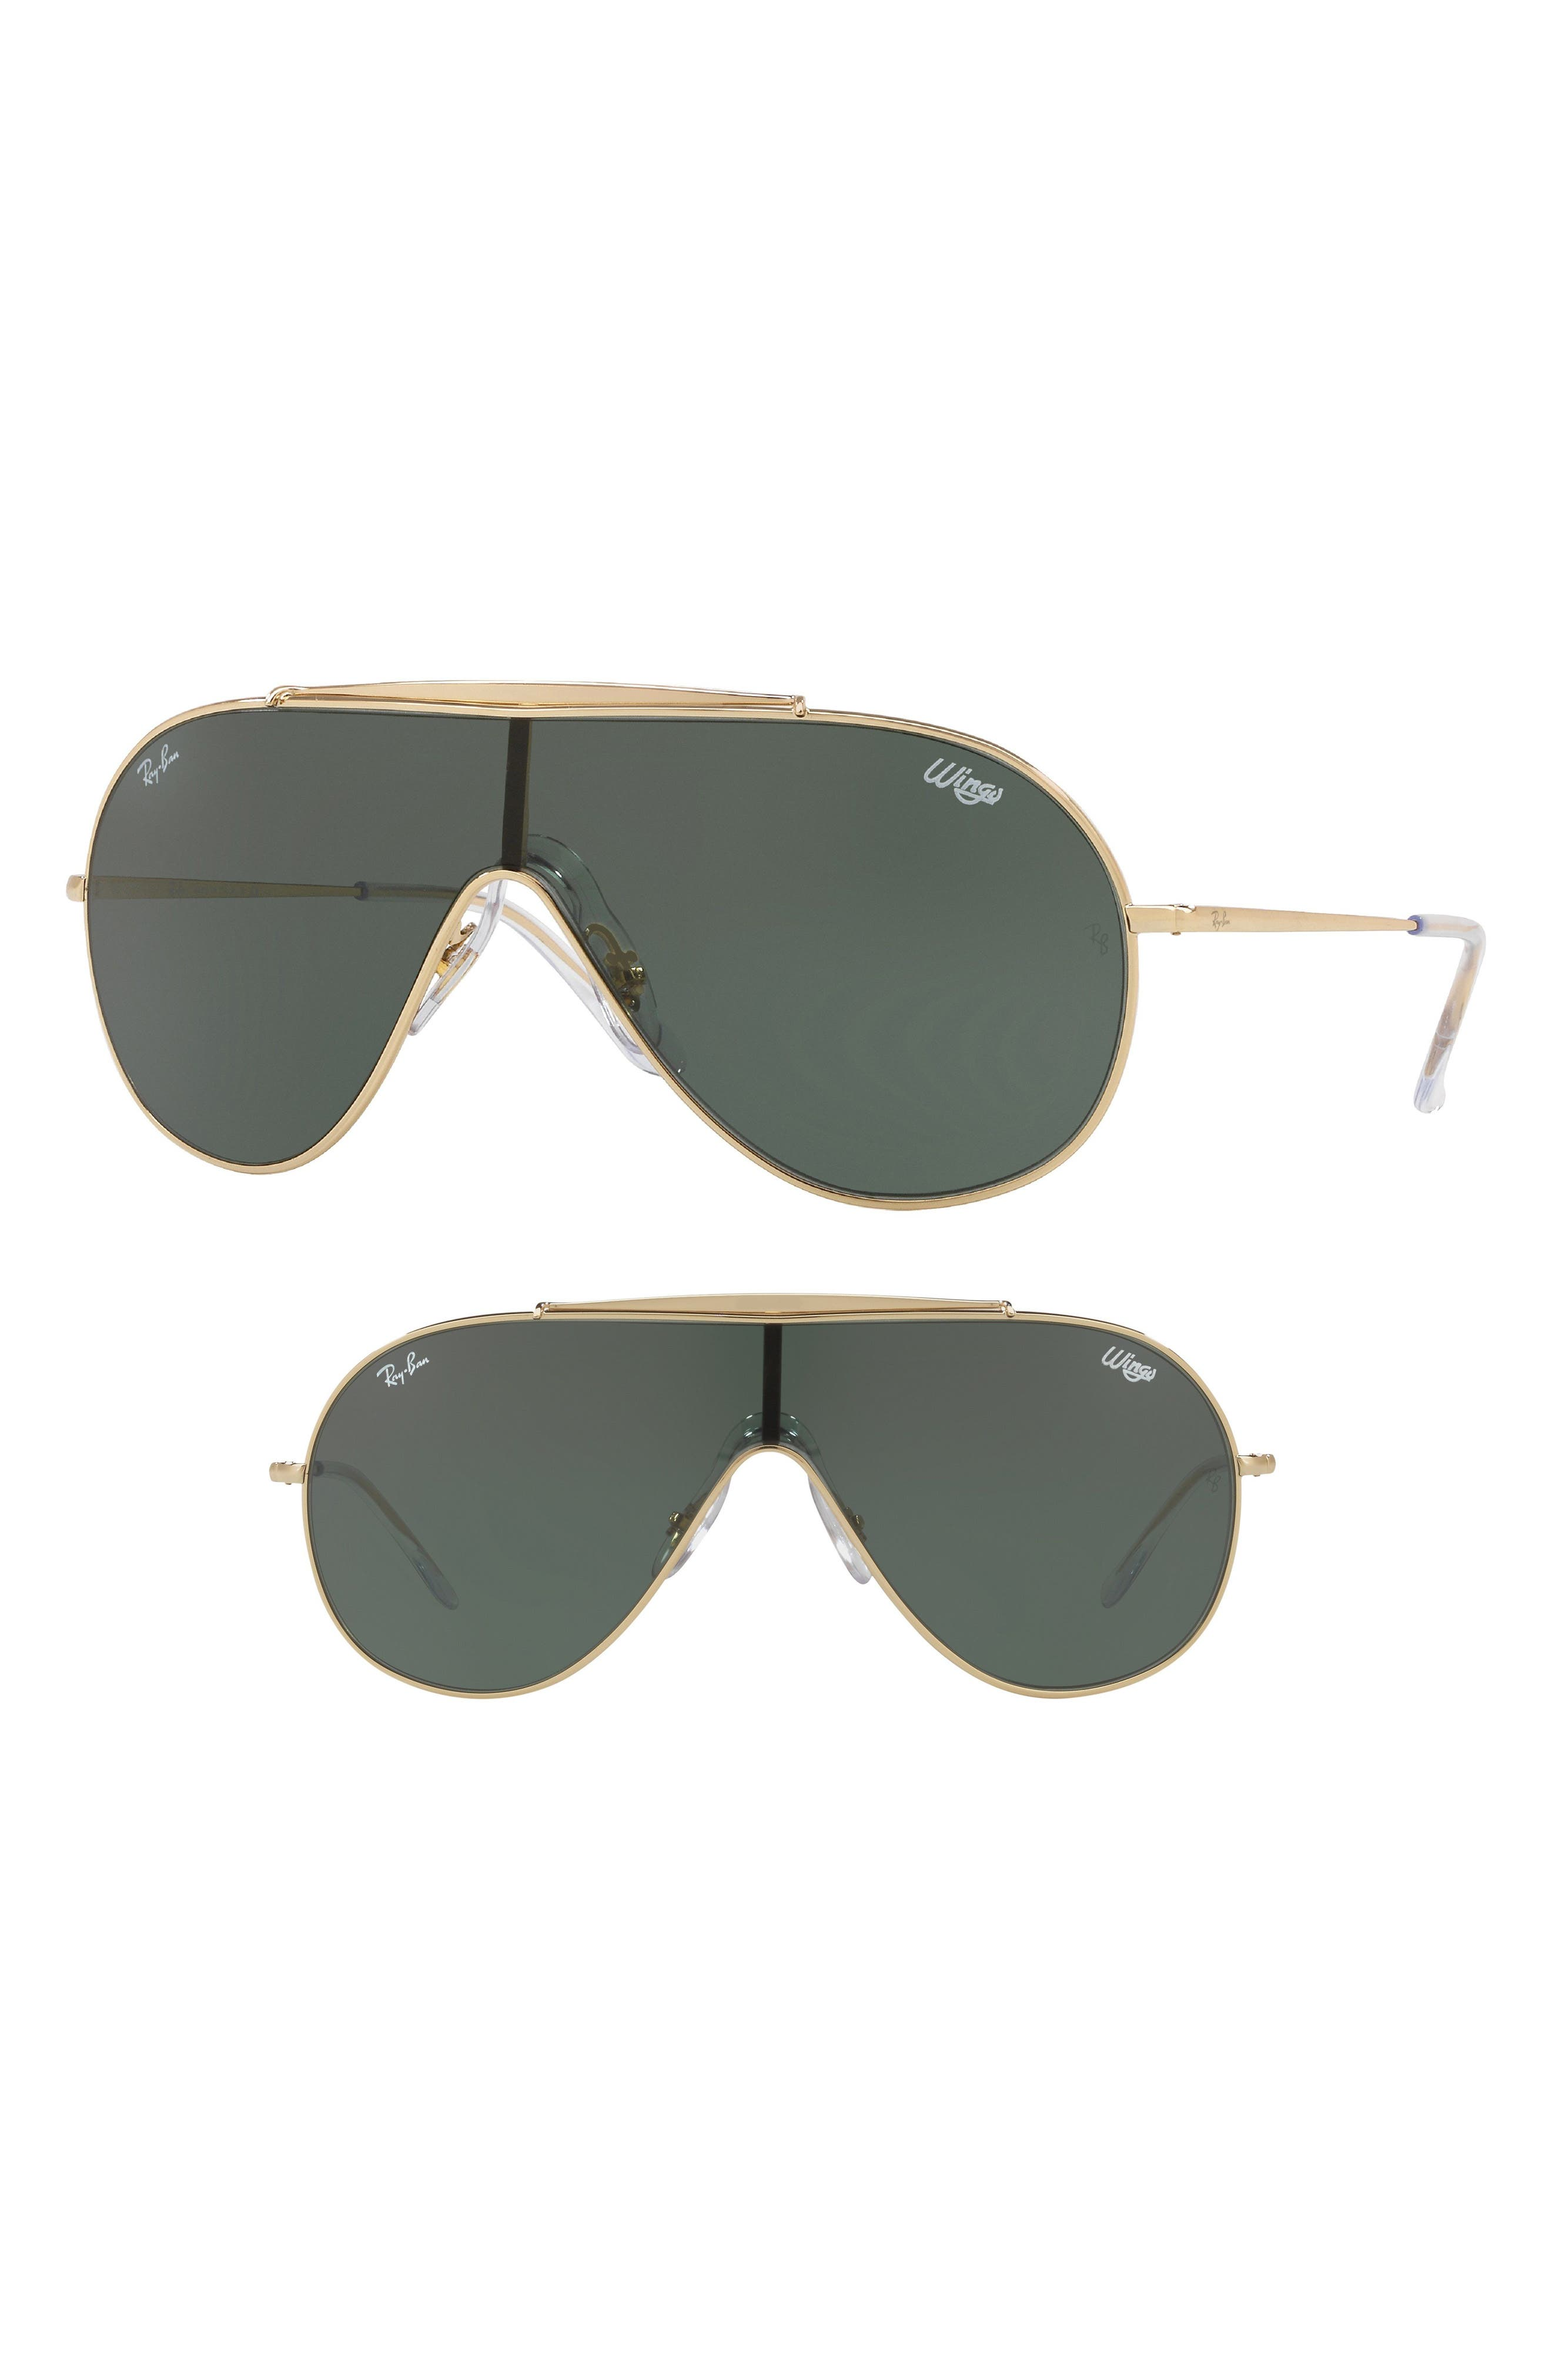 133mm Shield Sunglasses,                             Main thumbnail 1, color,                             GOLD SOLID